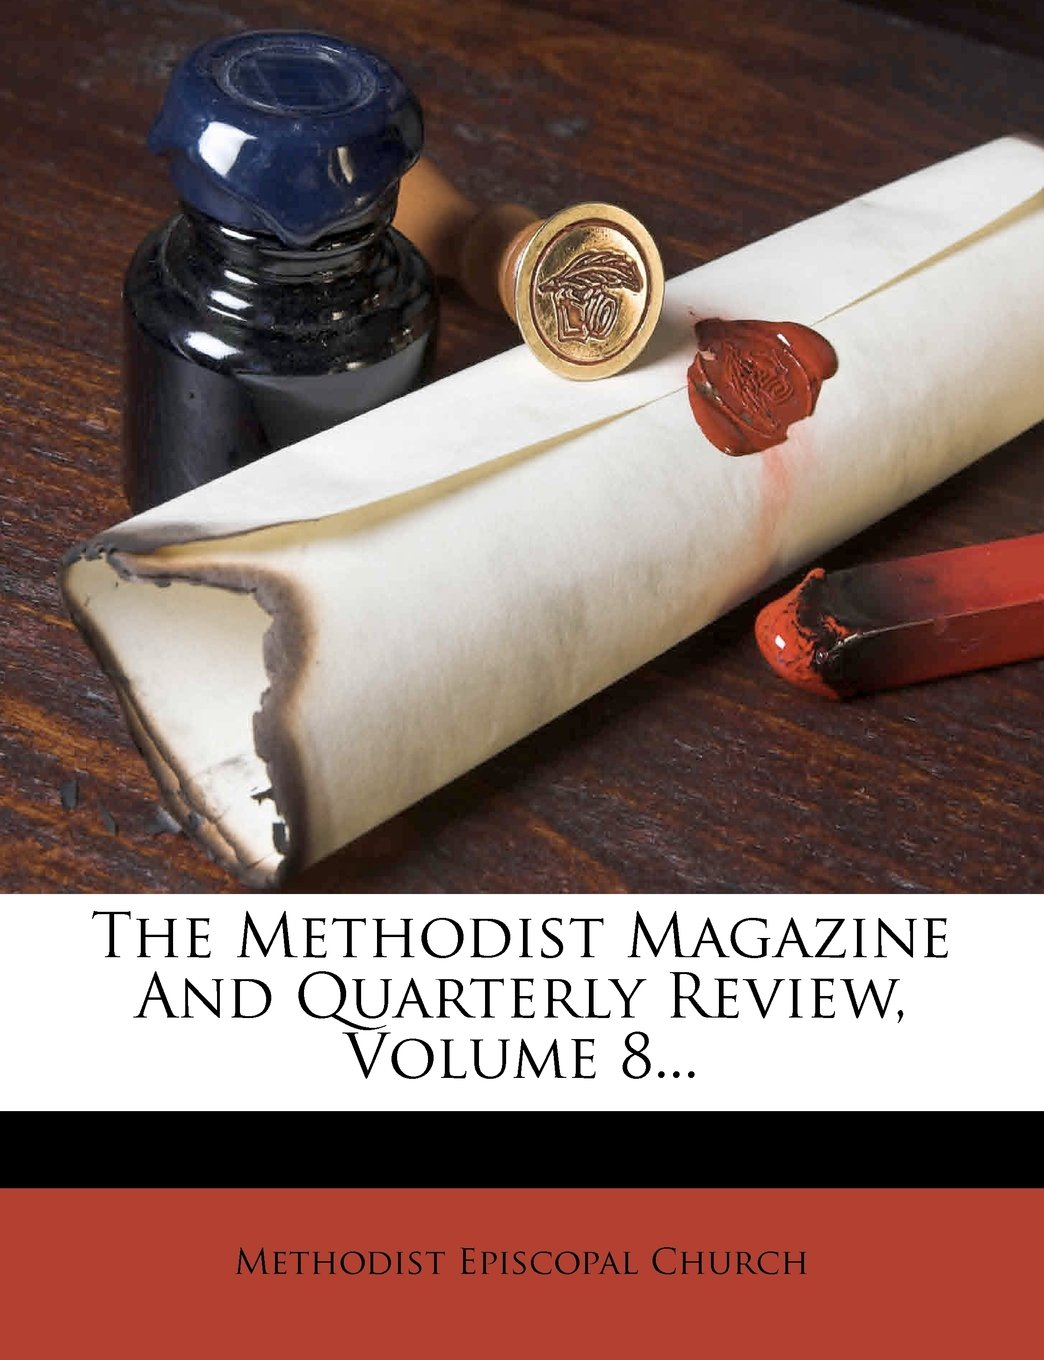 The Methodist Magazine And Quarterly Review, Volume 8... pdf